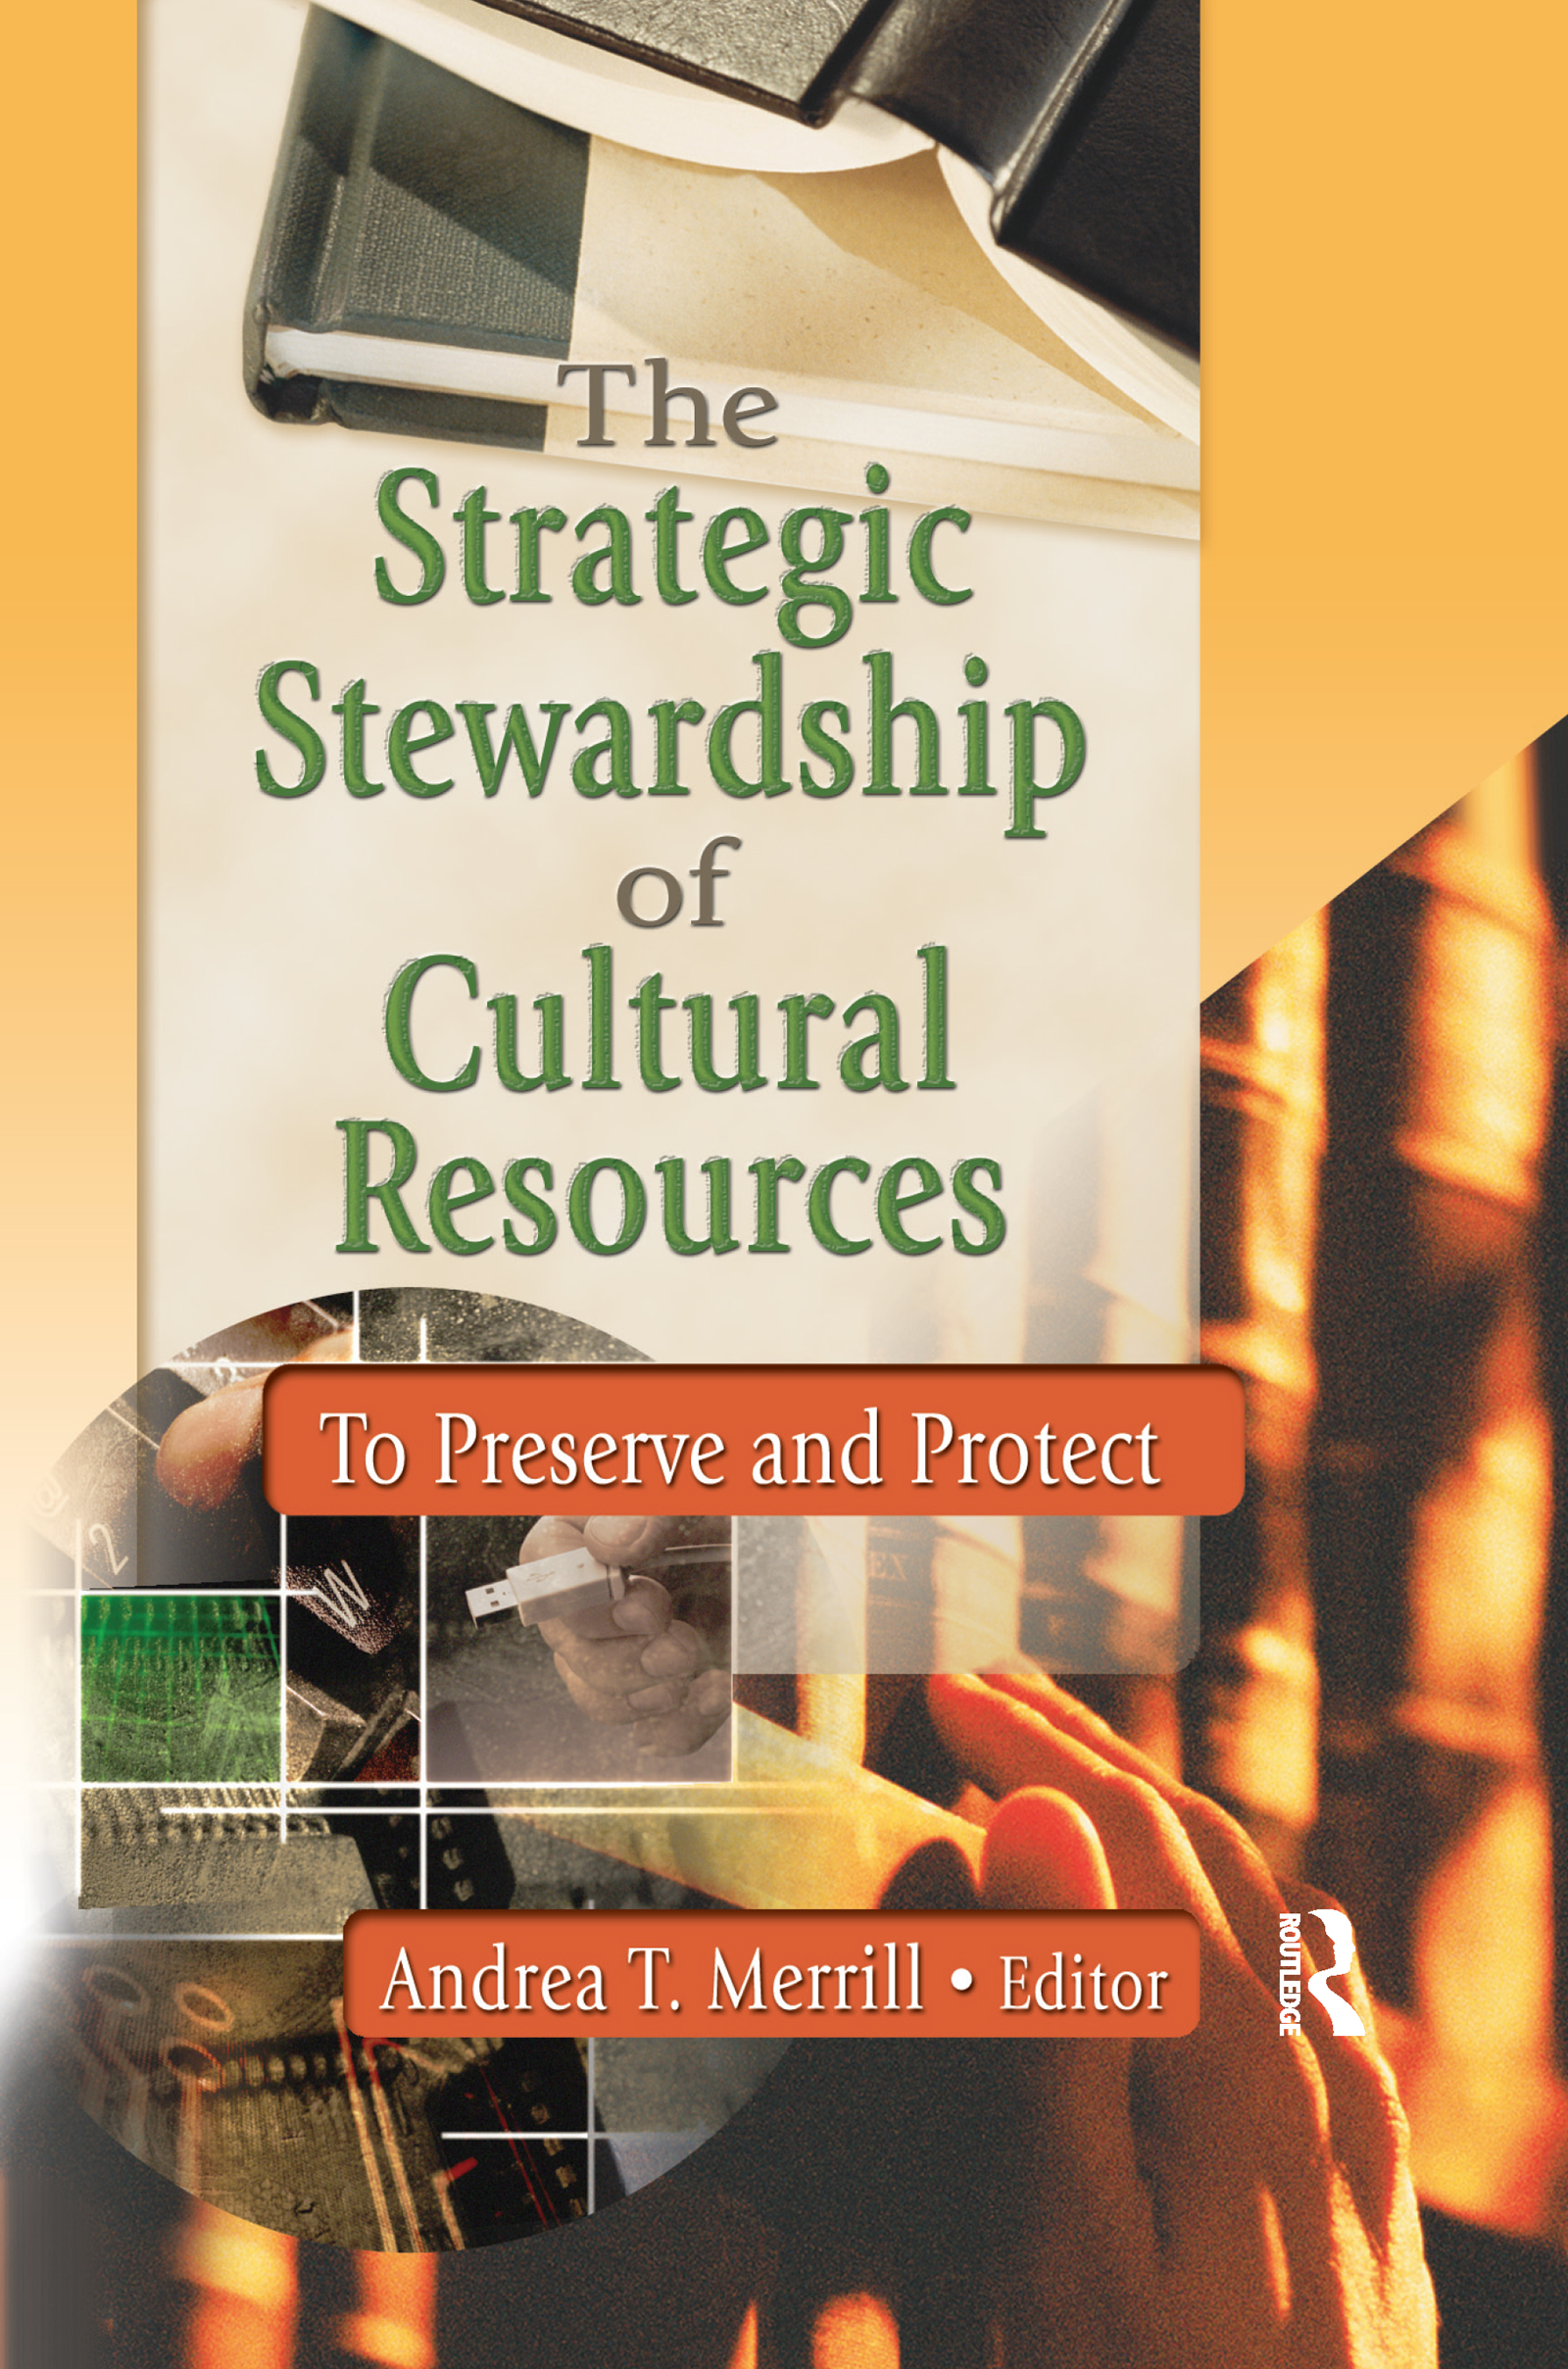 The Strategic Stewardship of Cultural Resources (Paperback) book cover